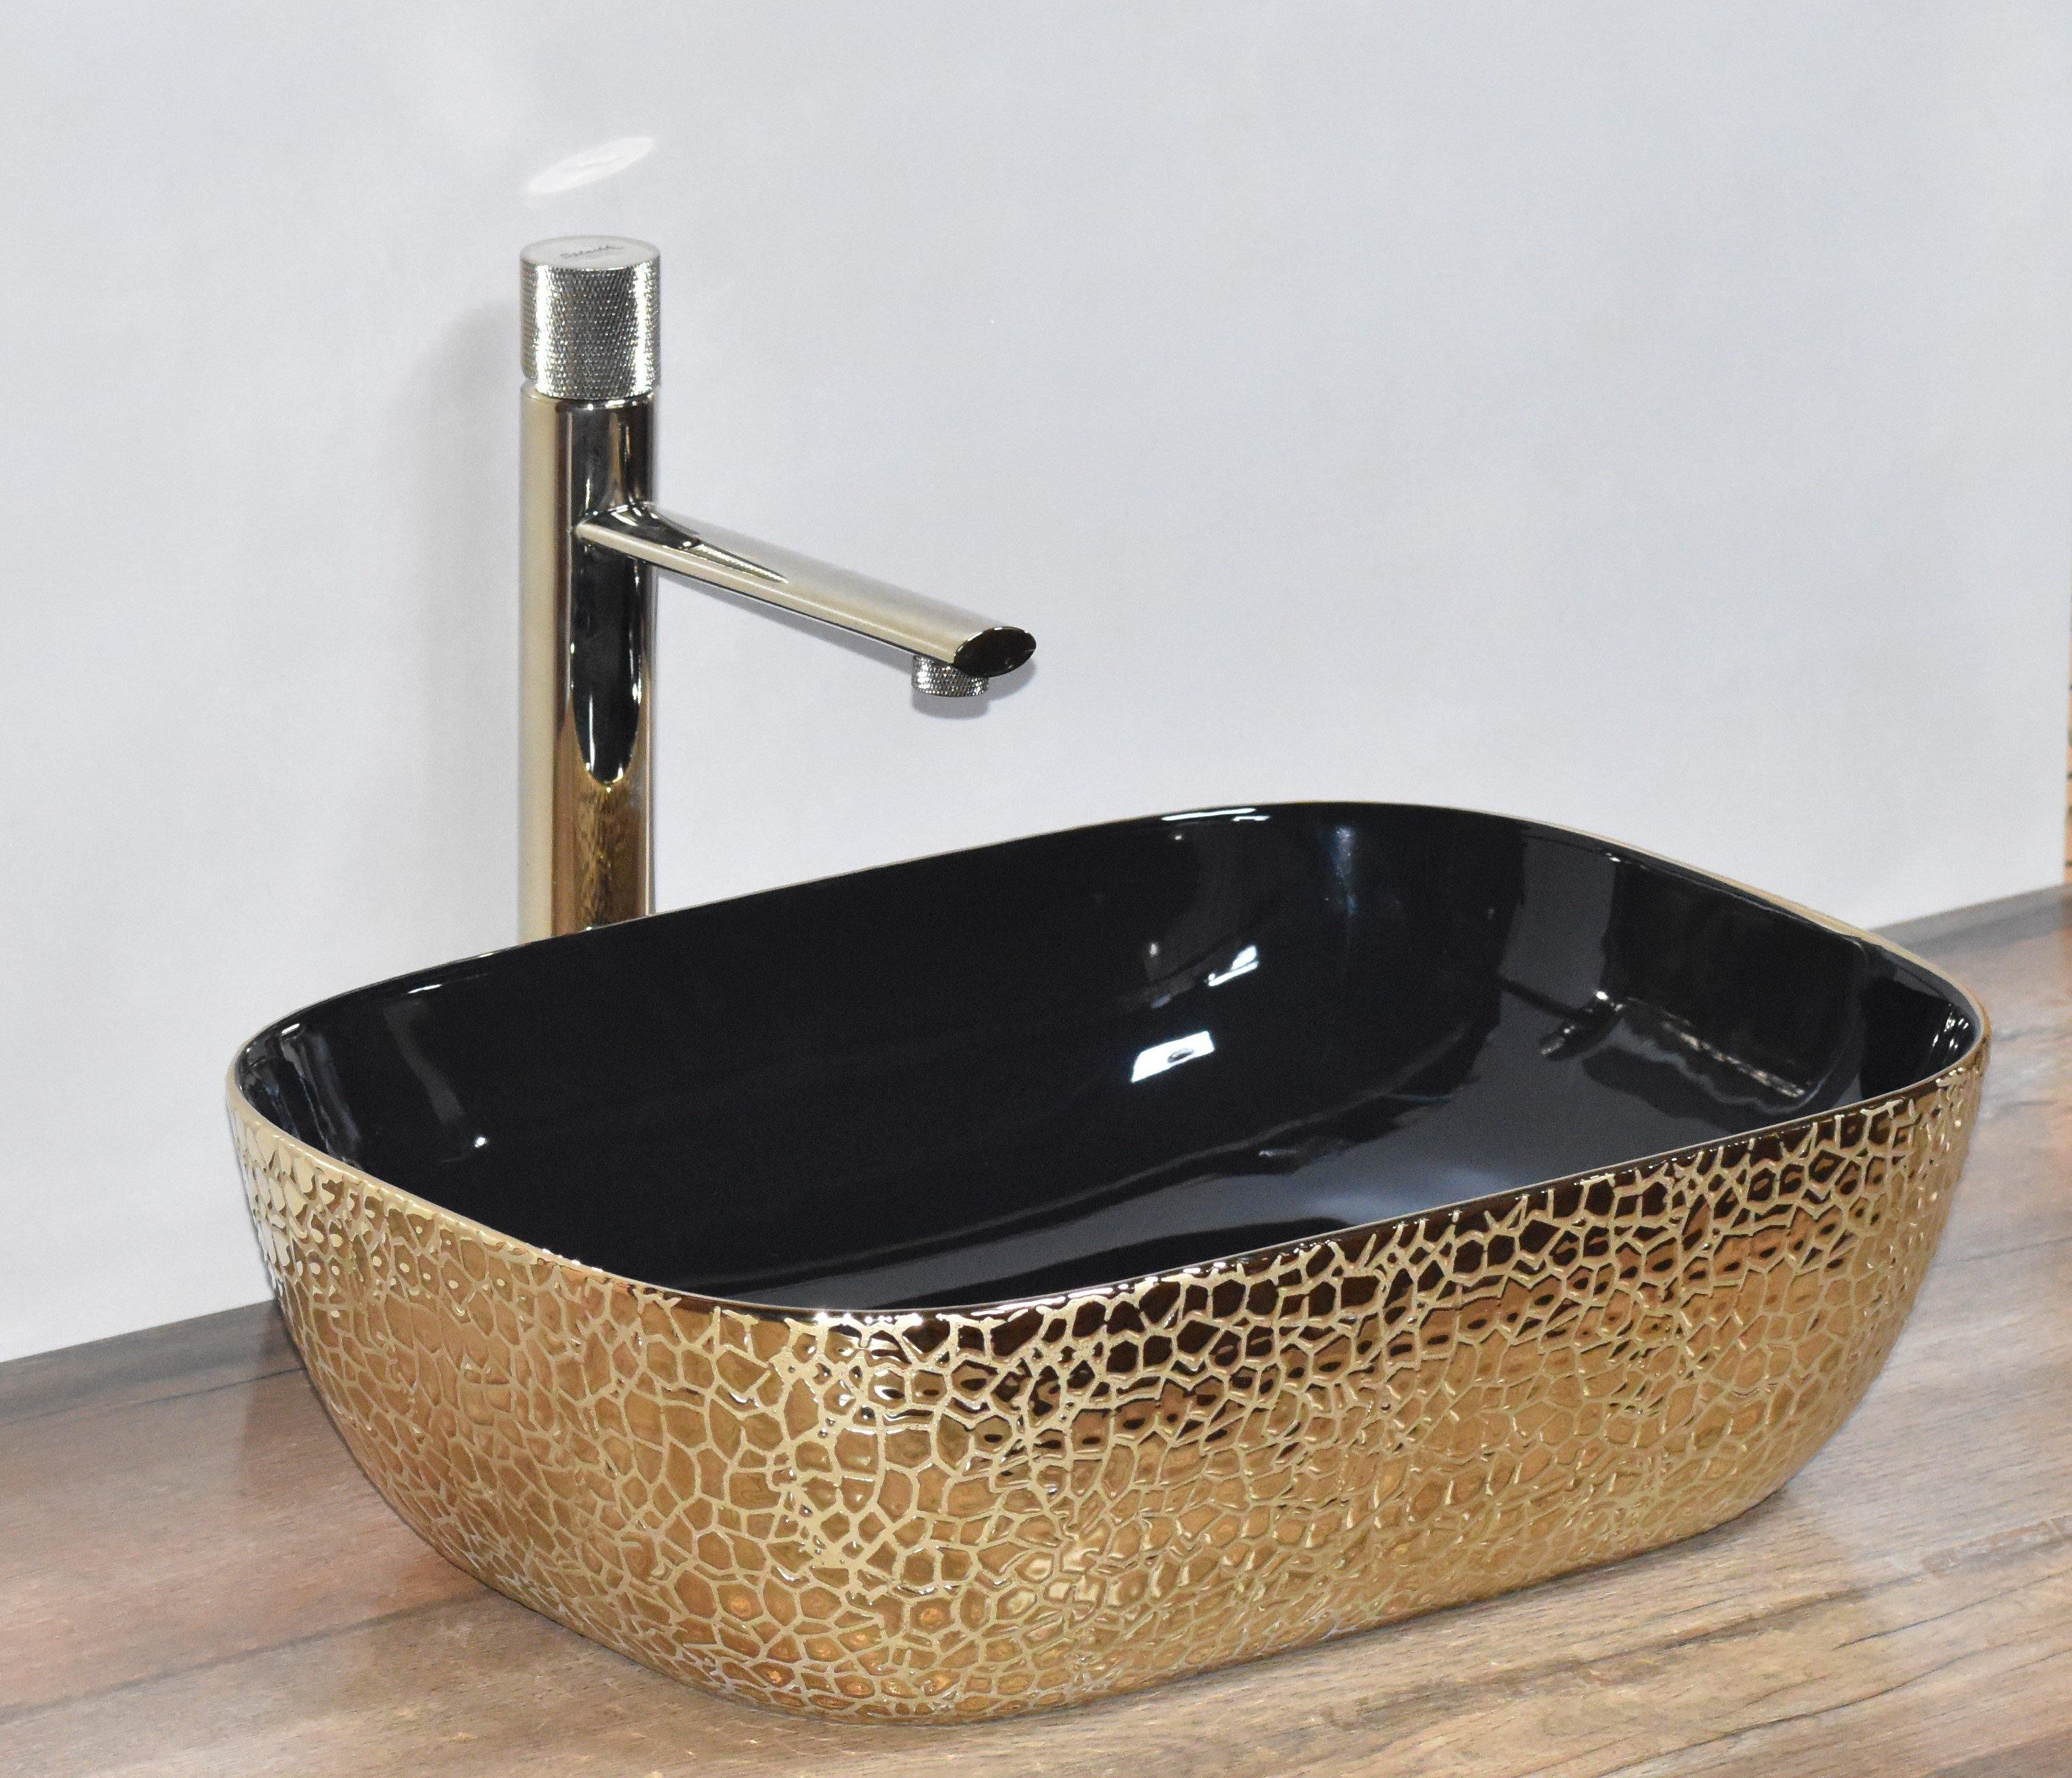 Ceramic Bathroom Sink Above Counter Vessel Sink Bowl Wash Basin Vanity Sink in Rectangle shape Countertop Black Gold color 45.5 x 32 x 13.5 CM